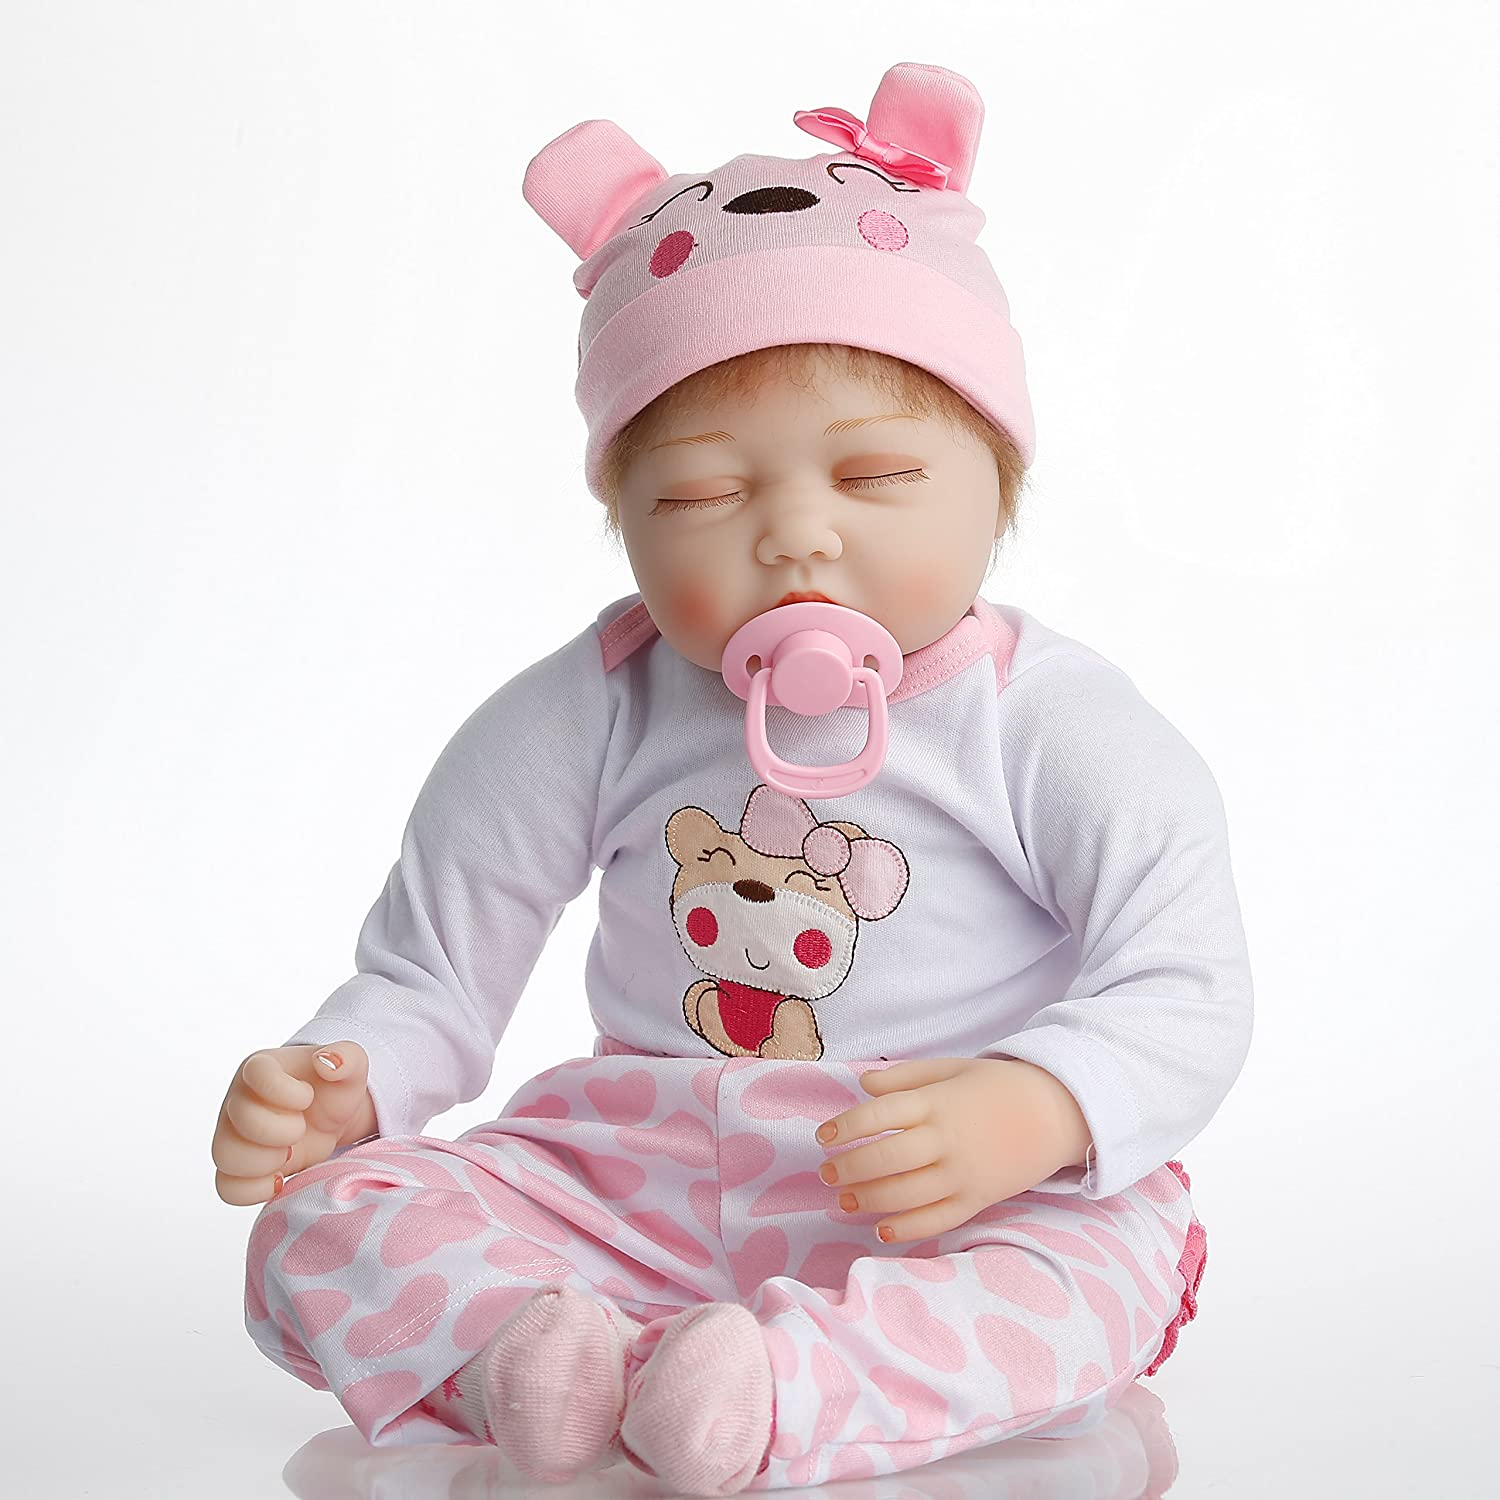 ef3daa14a Amazon.com  NPK Collection Reborn Baby Doll realistic baby dolls 22 inch  Vinyl Silicone Babies Doll Newborn real baby doll Sleep doll  Beauty